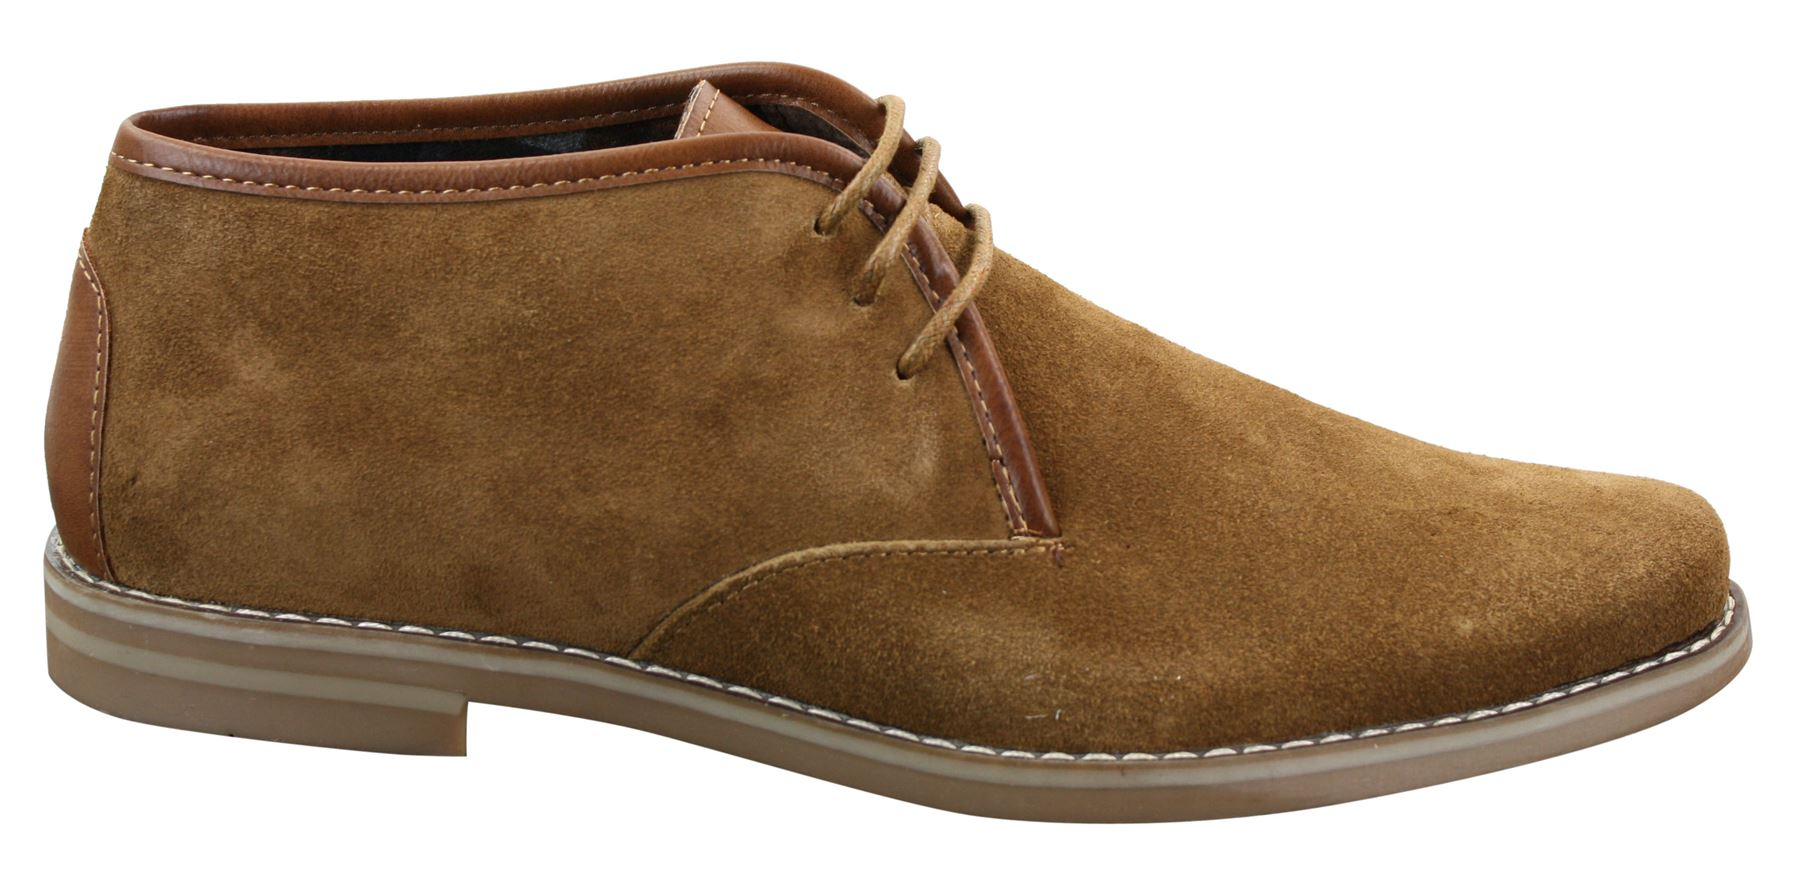 Redtape Brown Suede Shoes Size